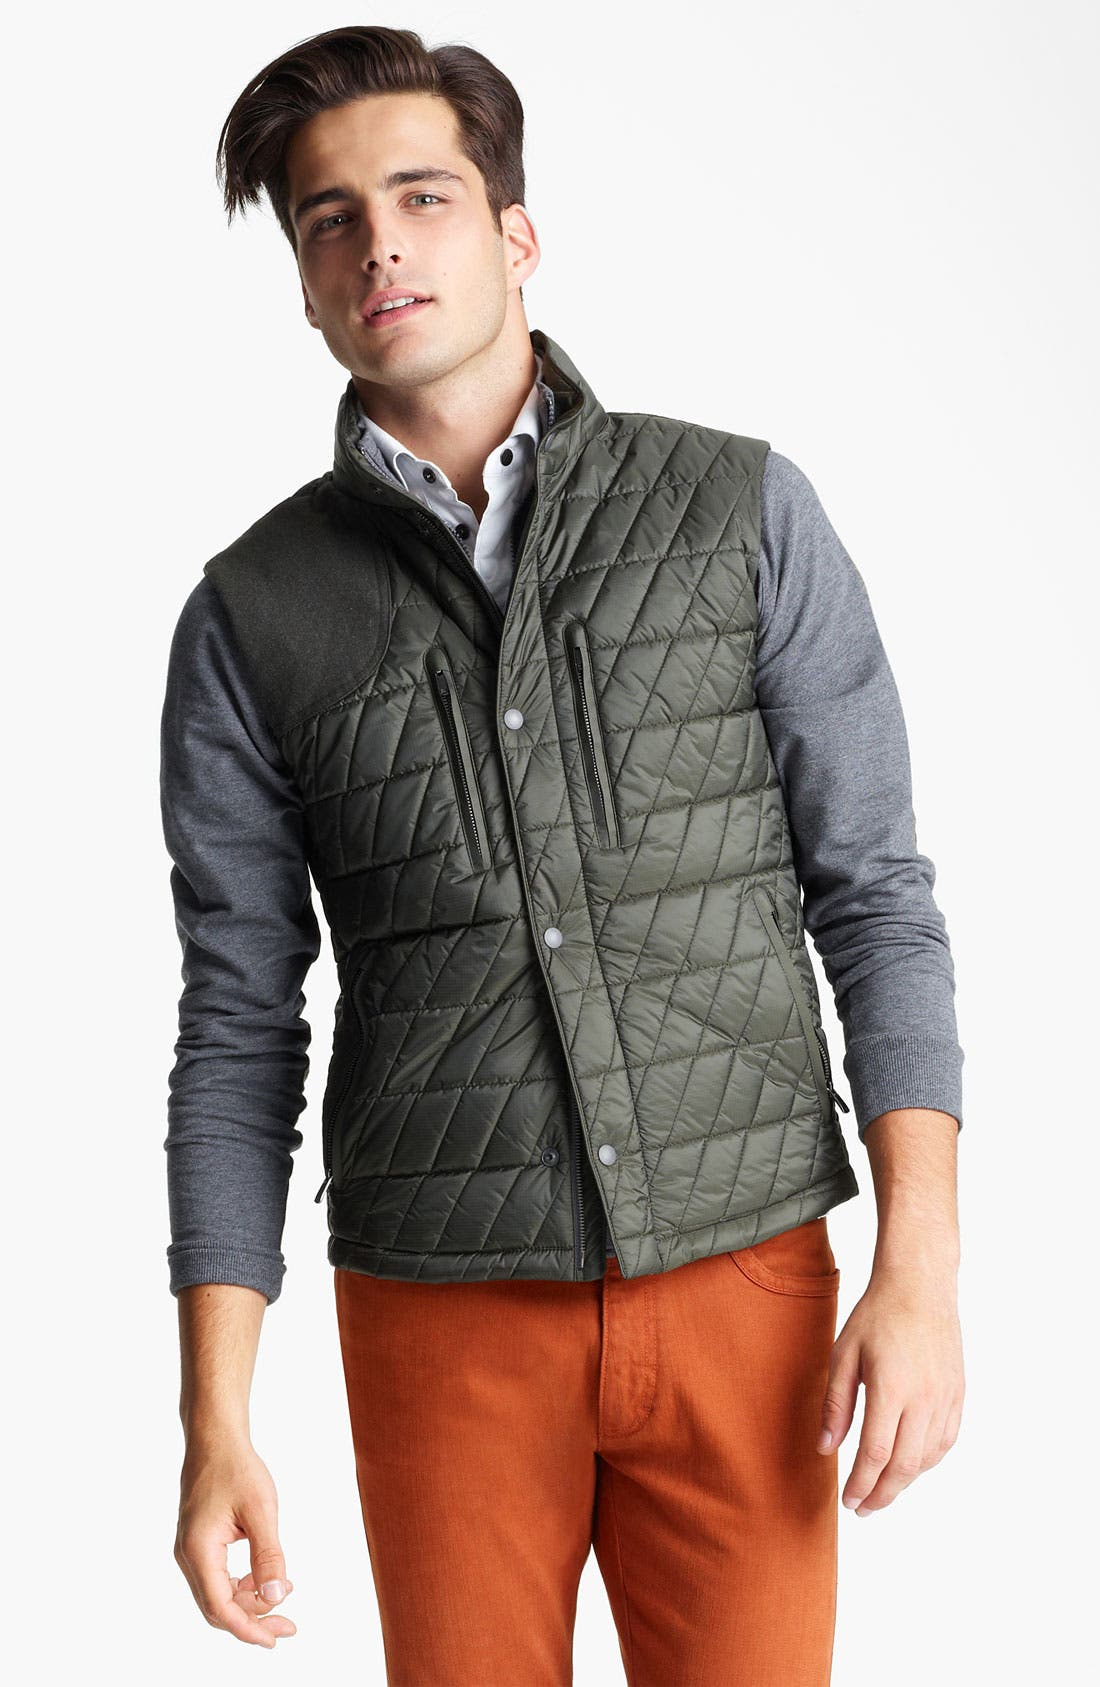 Alternate Image 1 Selected - Zegna Sport 'Eco-Warmer' Quilted Thermal Vest